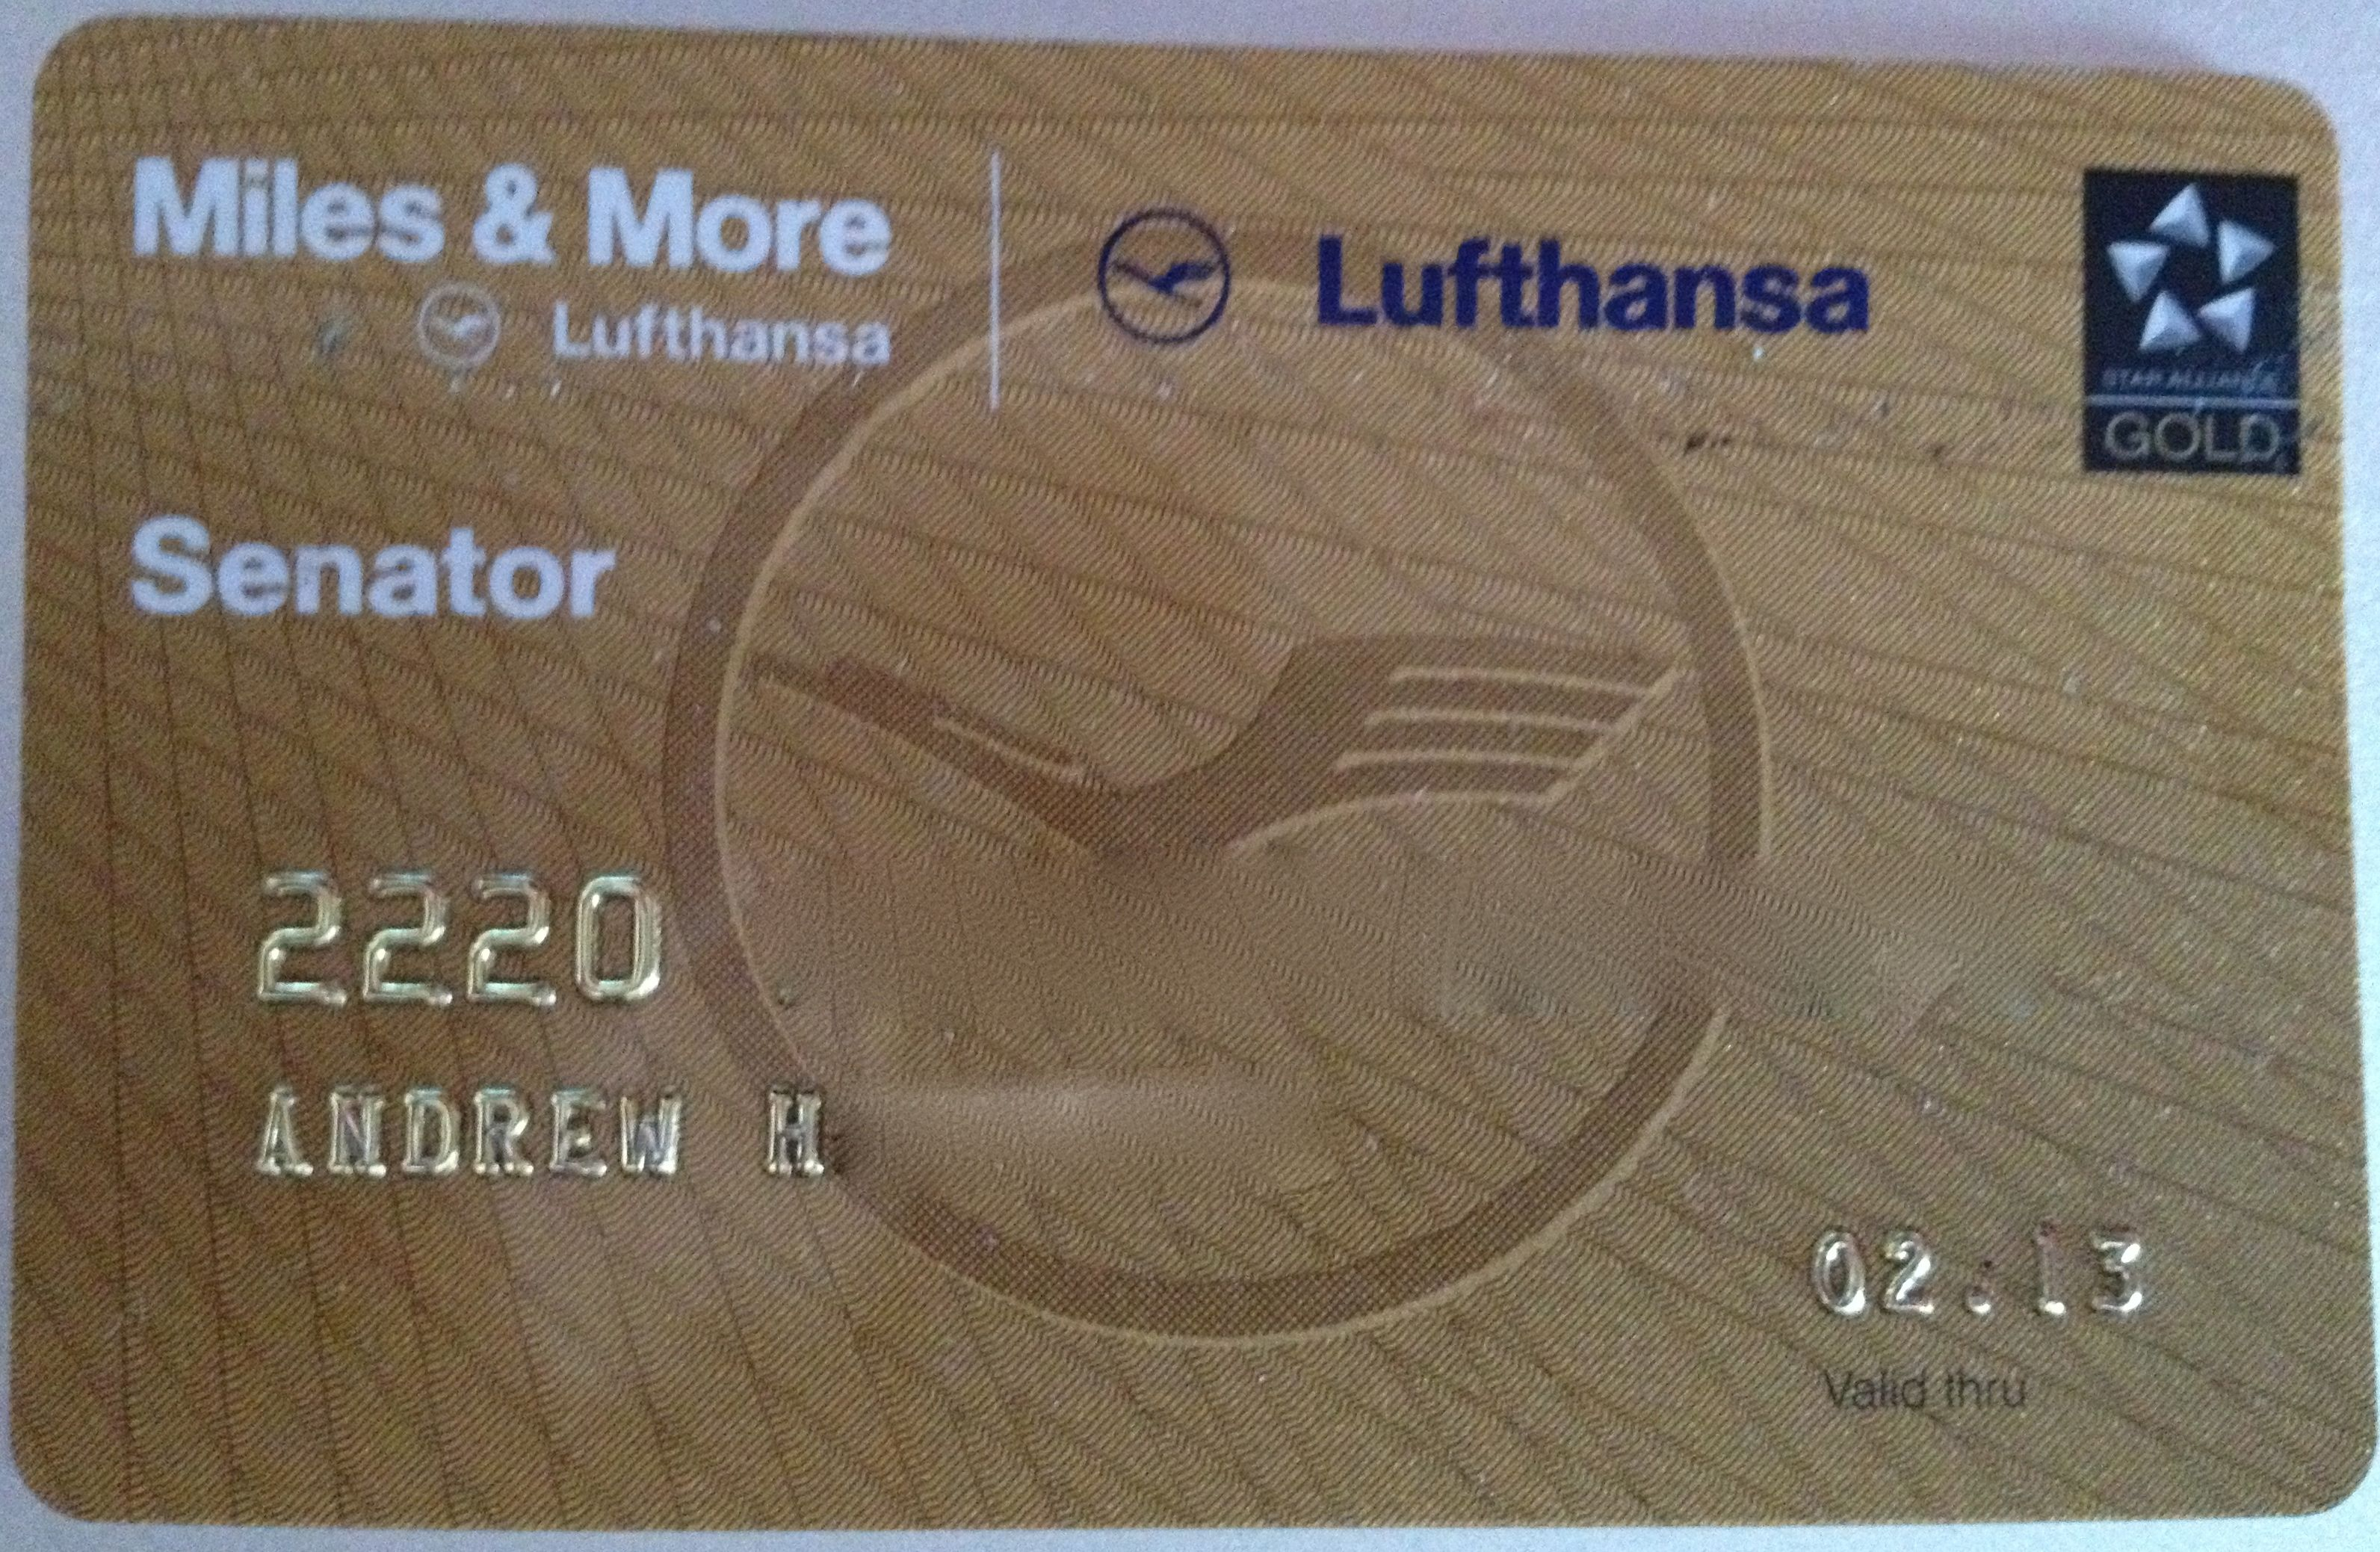 Miles And More Points Lufthansa Miles More Senator Gold Loyalty Card Star Alliance